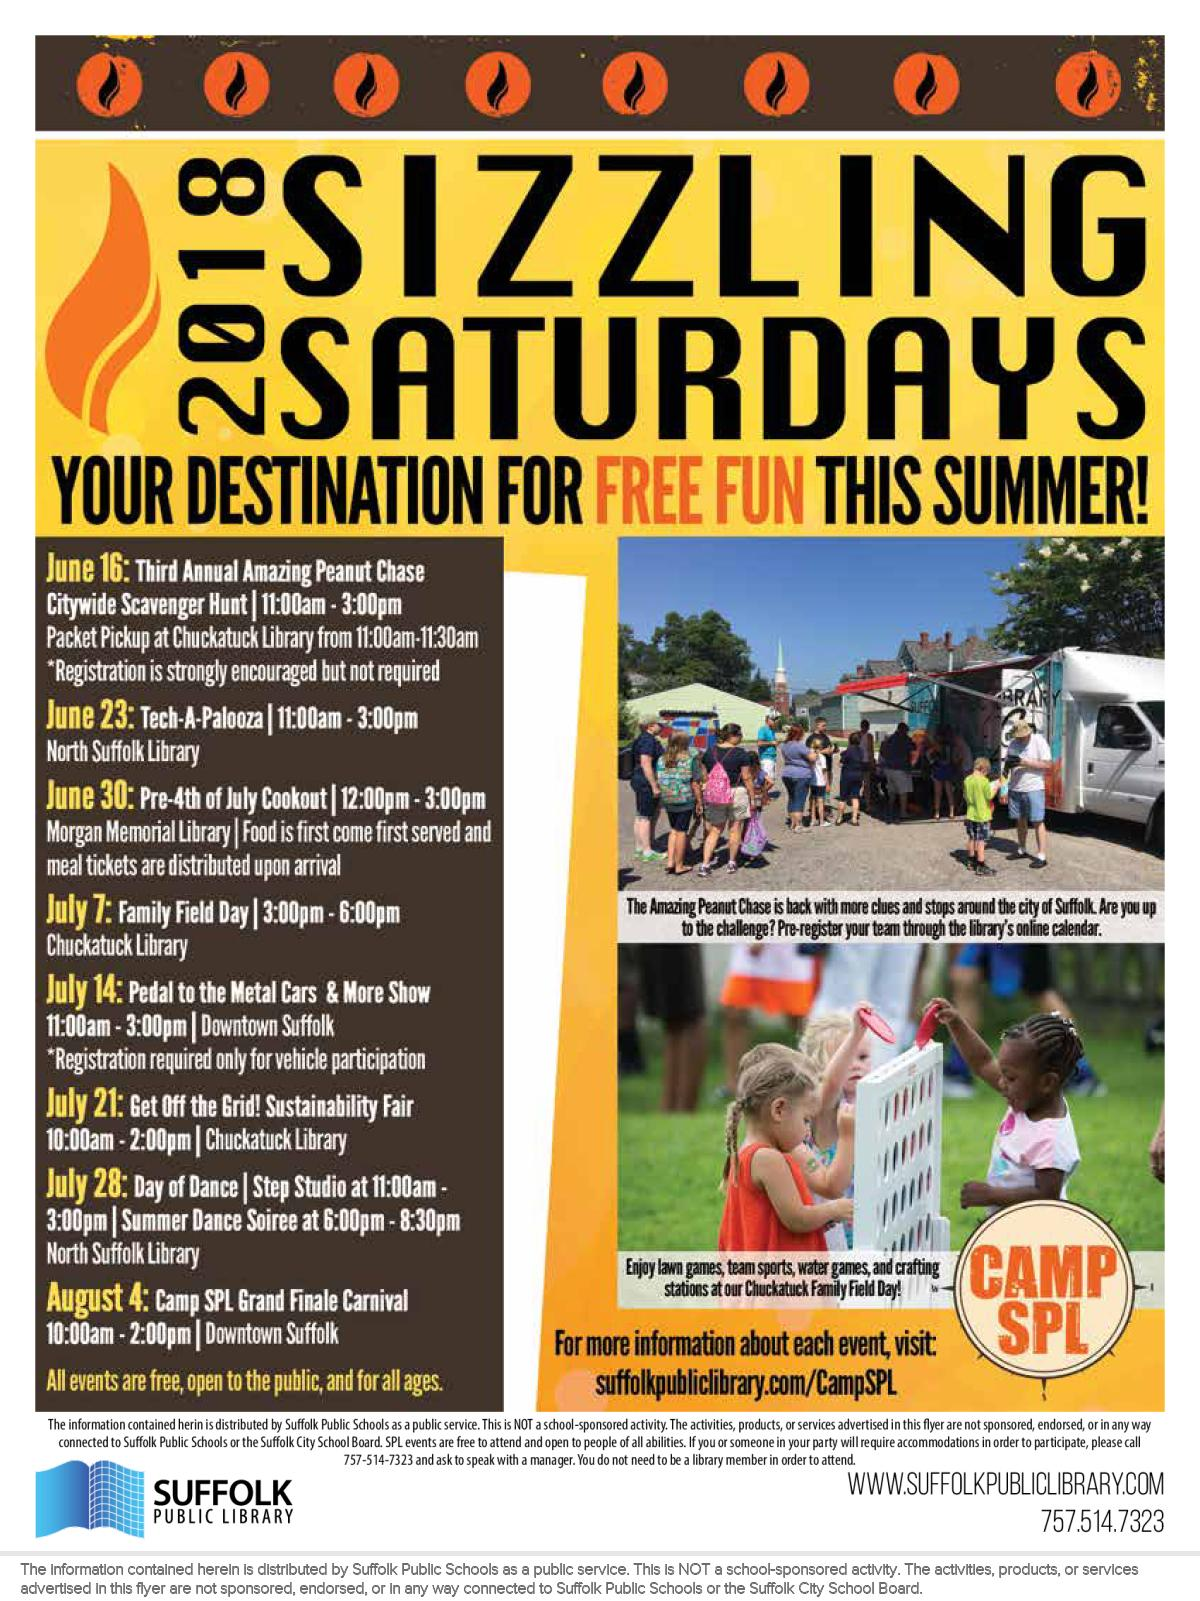 Image of a flyer titled Camp SPL Sizzling Saturdays Community Events